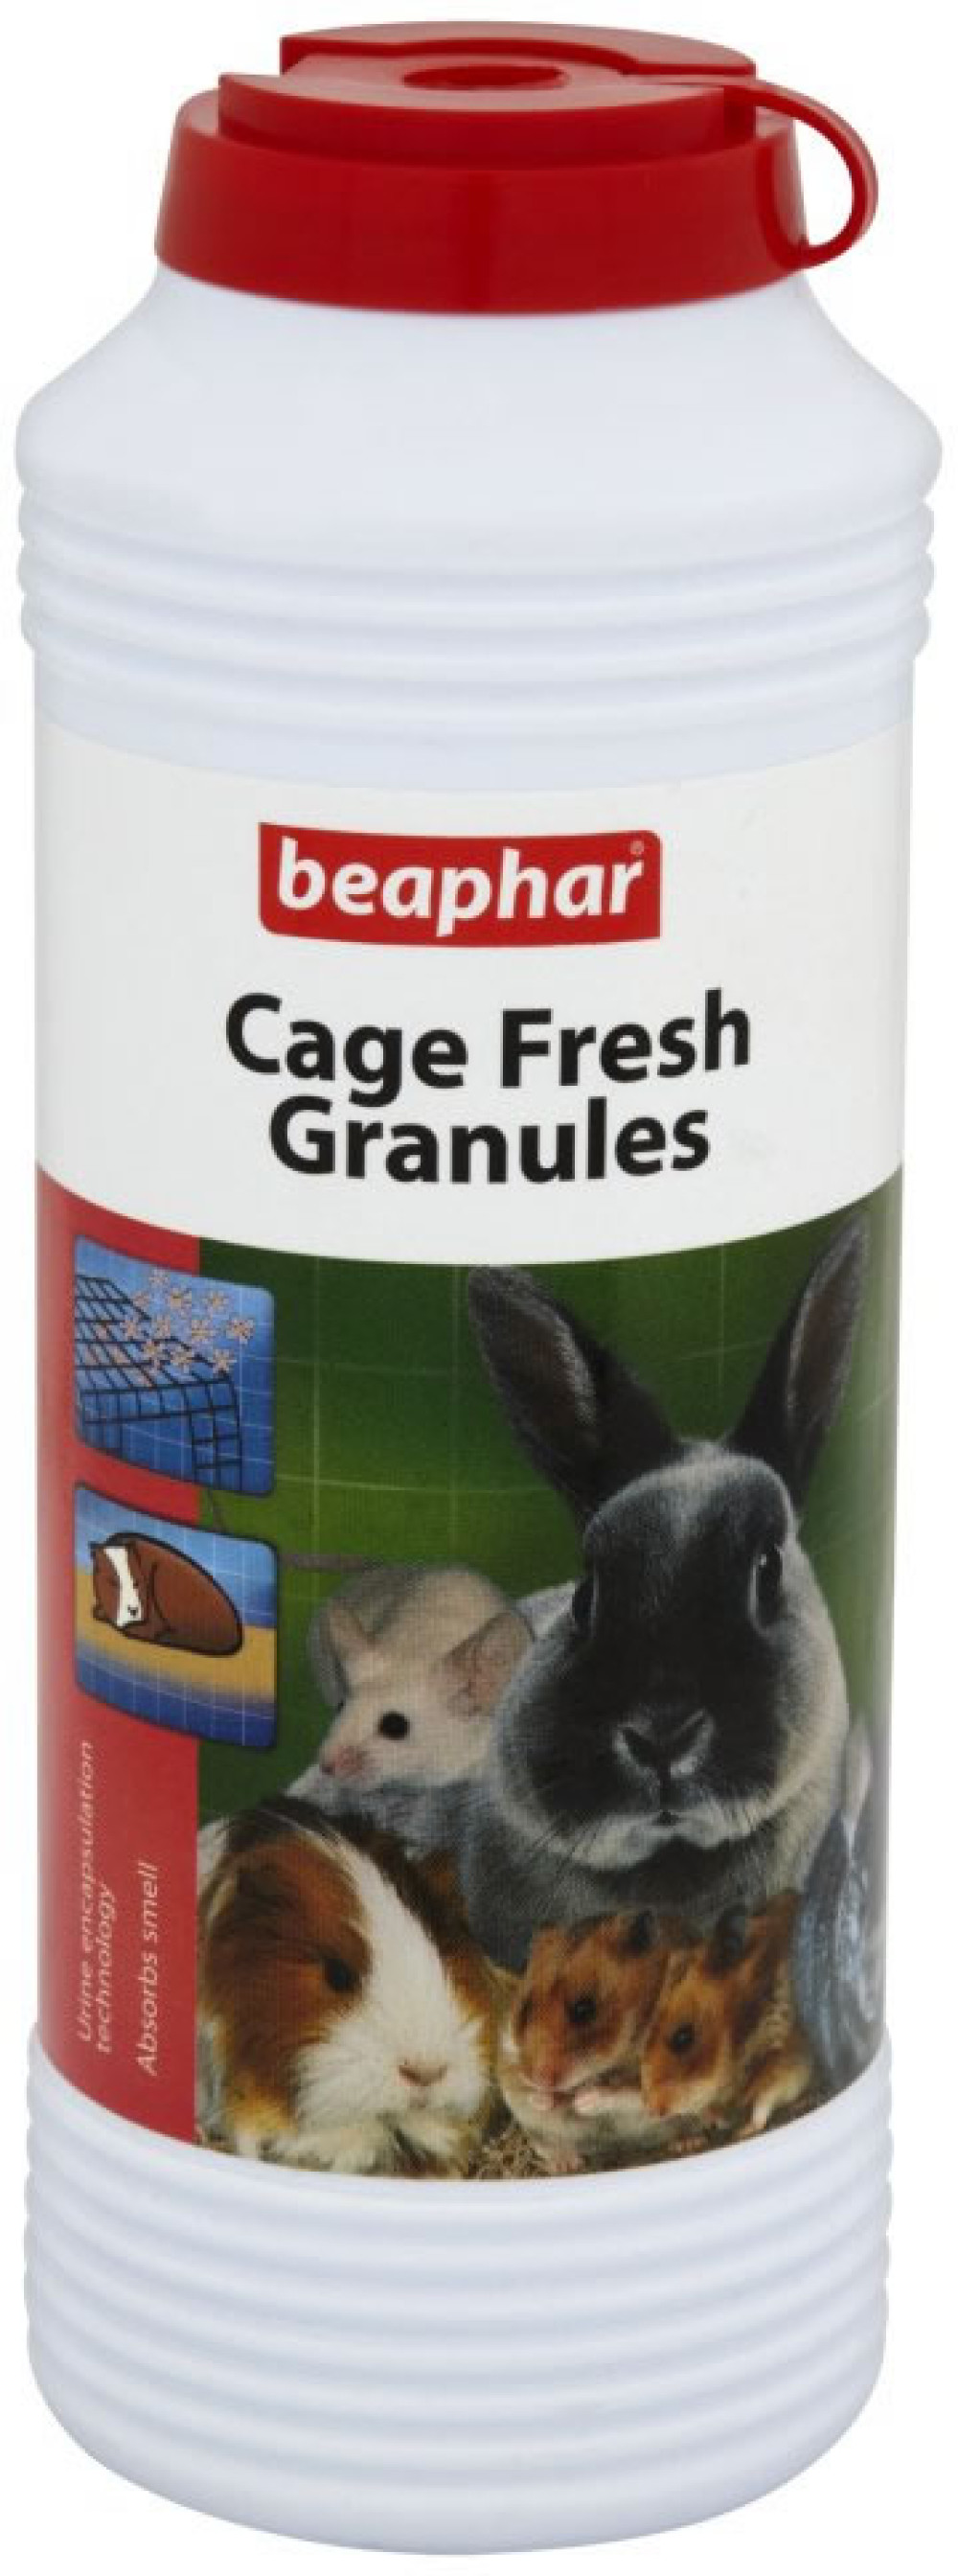 zoo/Beaphar_Odour_Killer_for_small_animals